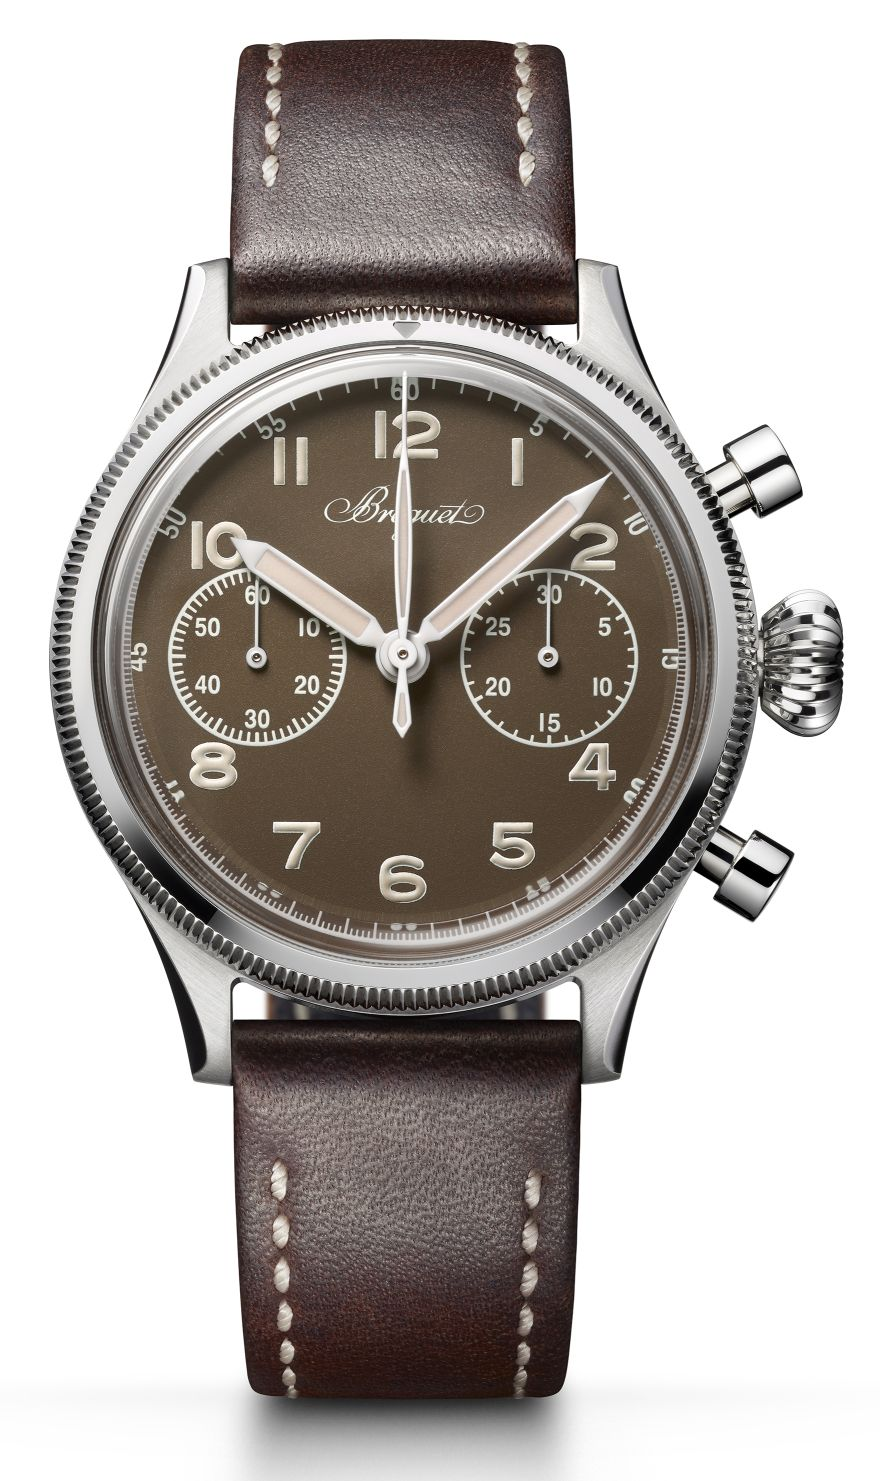 ONLY WATCH 2019 - Breguet Type 20, Breguet Only Watch, Breguet Type 20 Only Watch